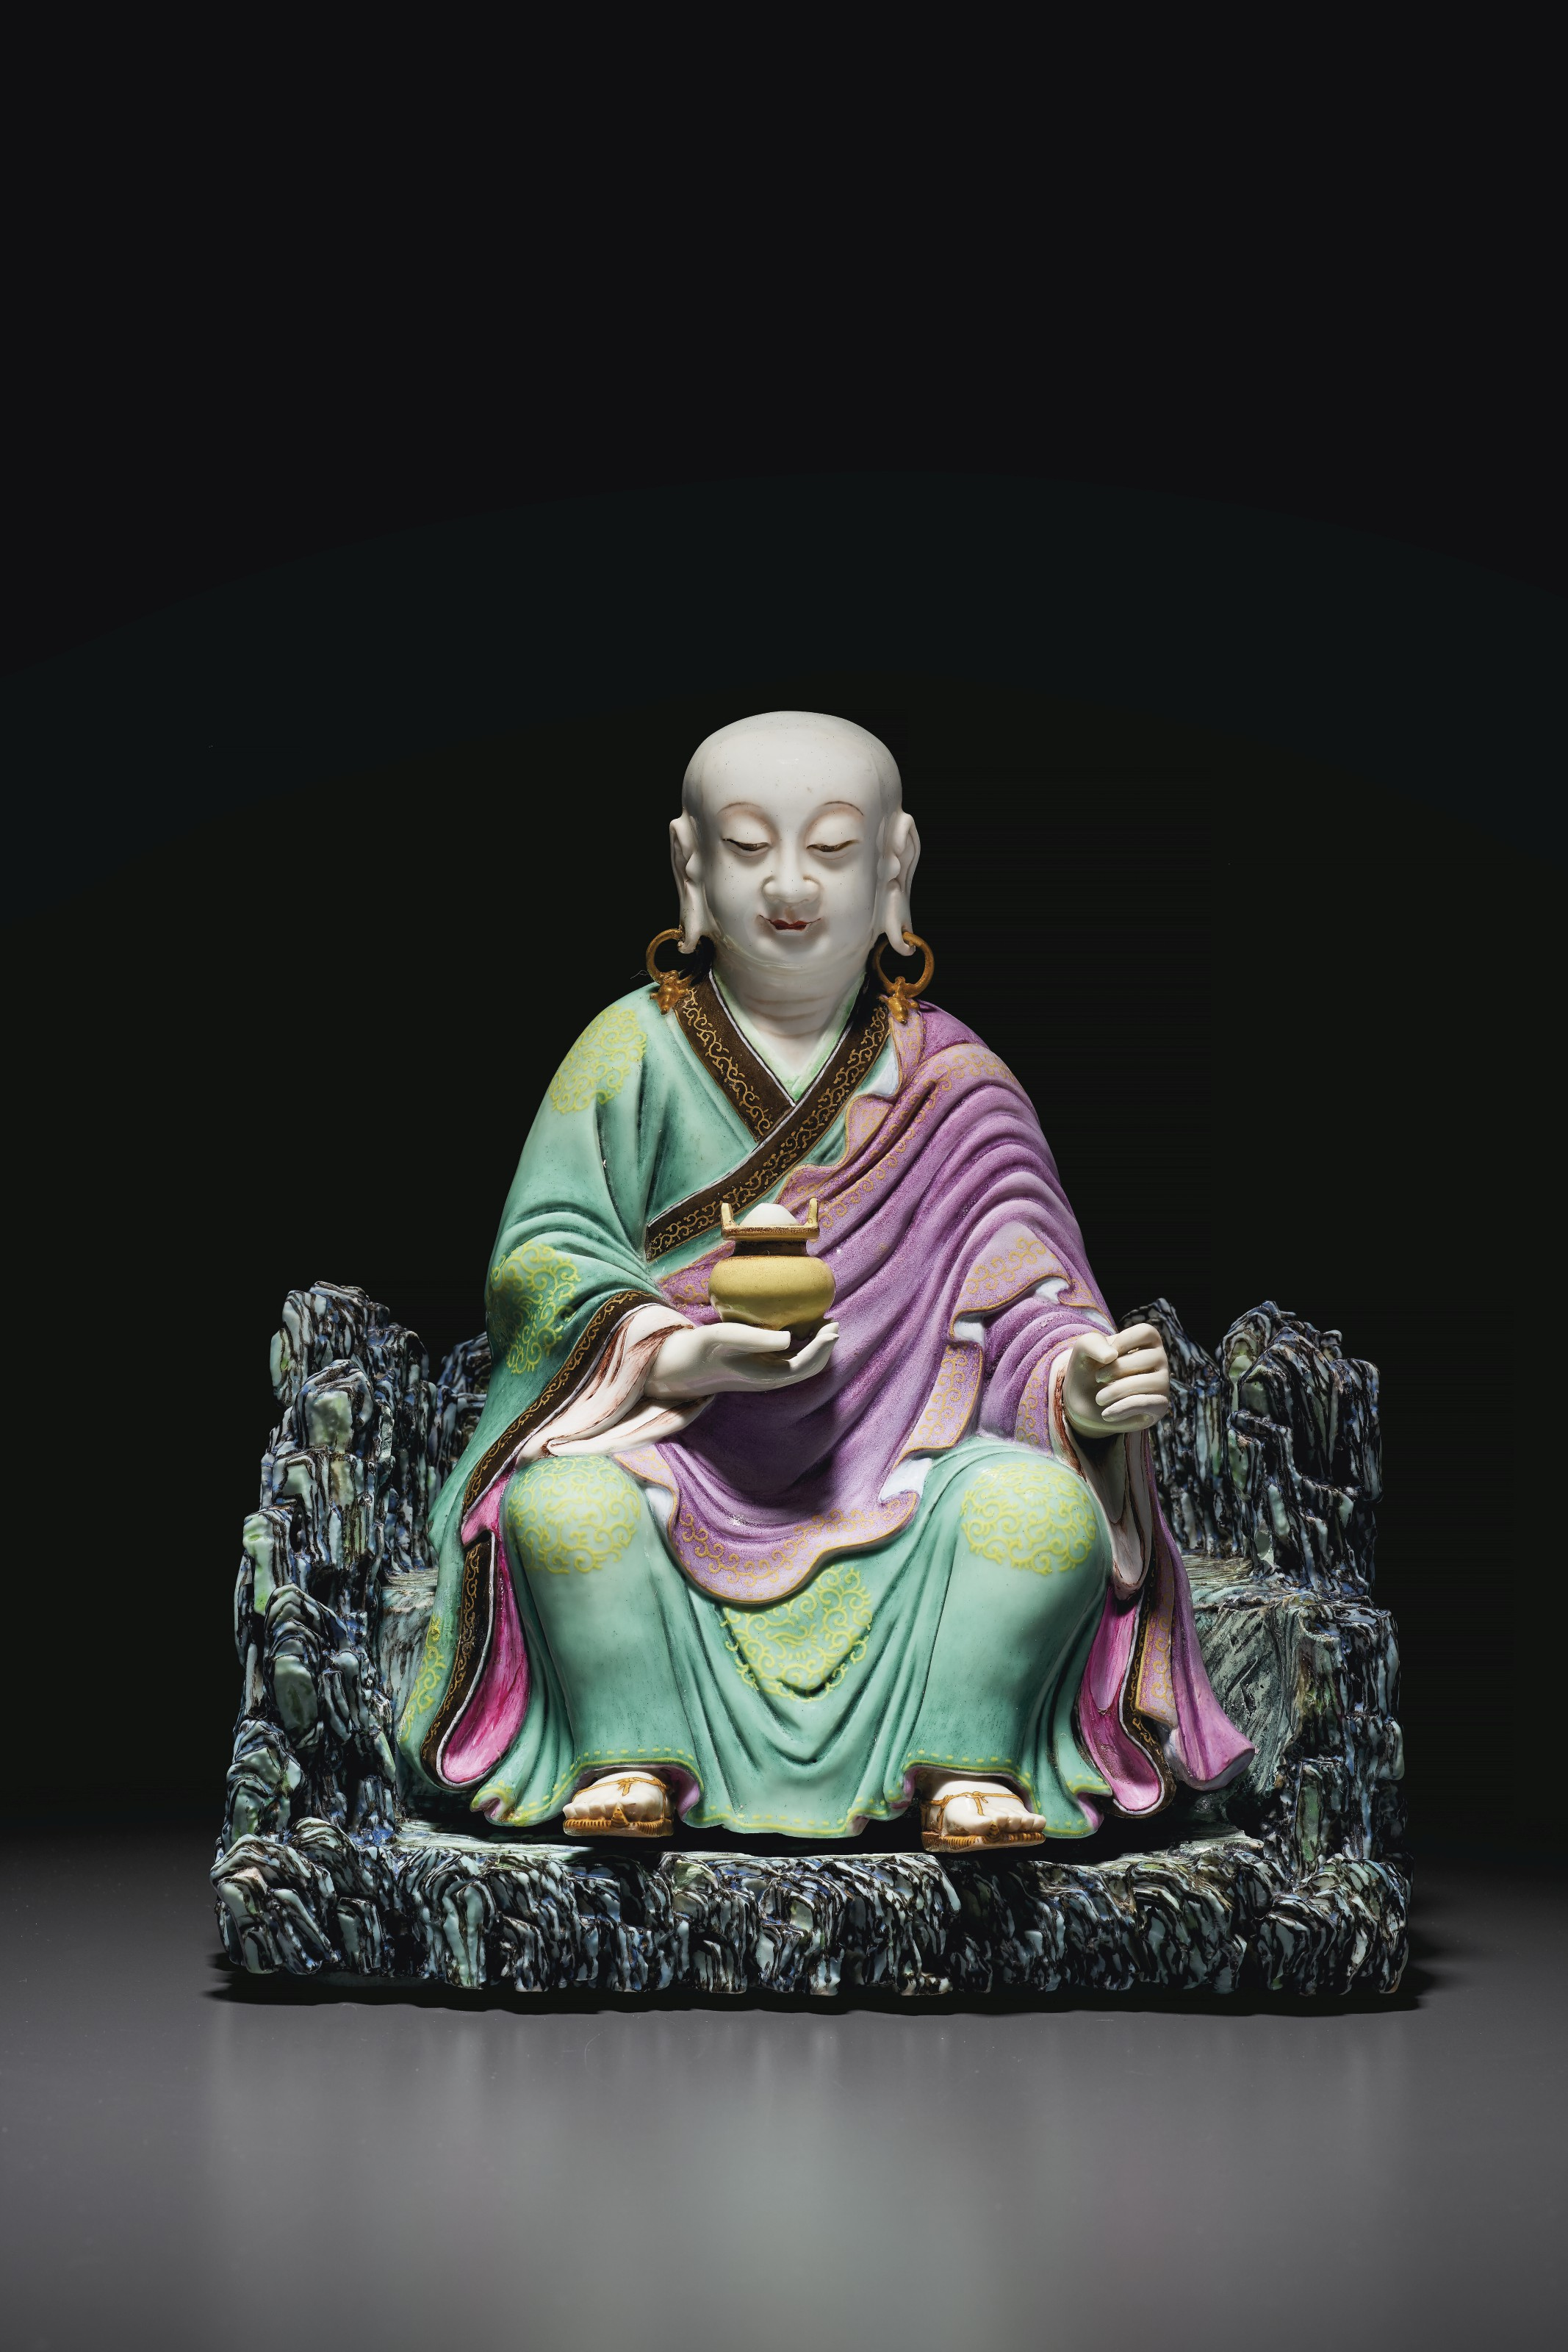 AN EXCEEDINGLY RARE AND SUPERBLY MODELED FAMILLE ROSE FIGURE OF A SEATED LUOHAN